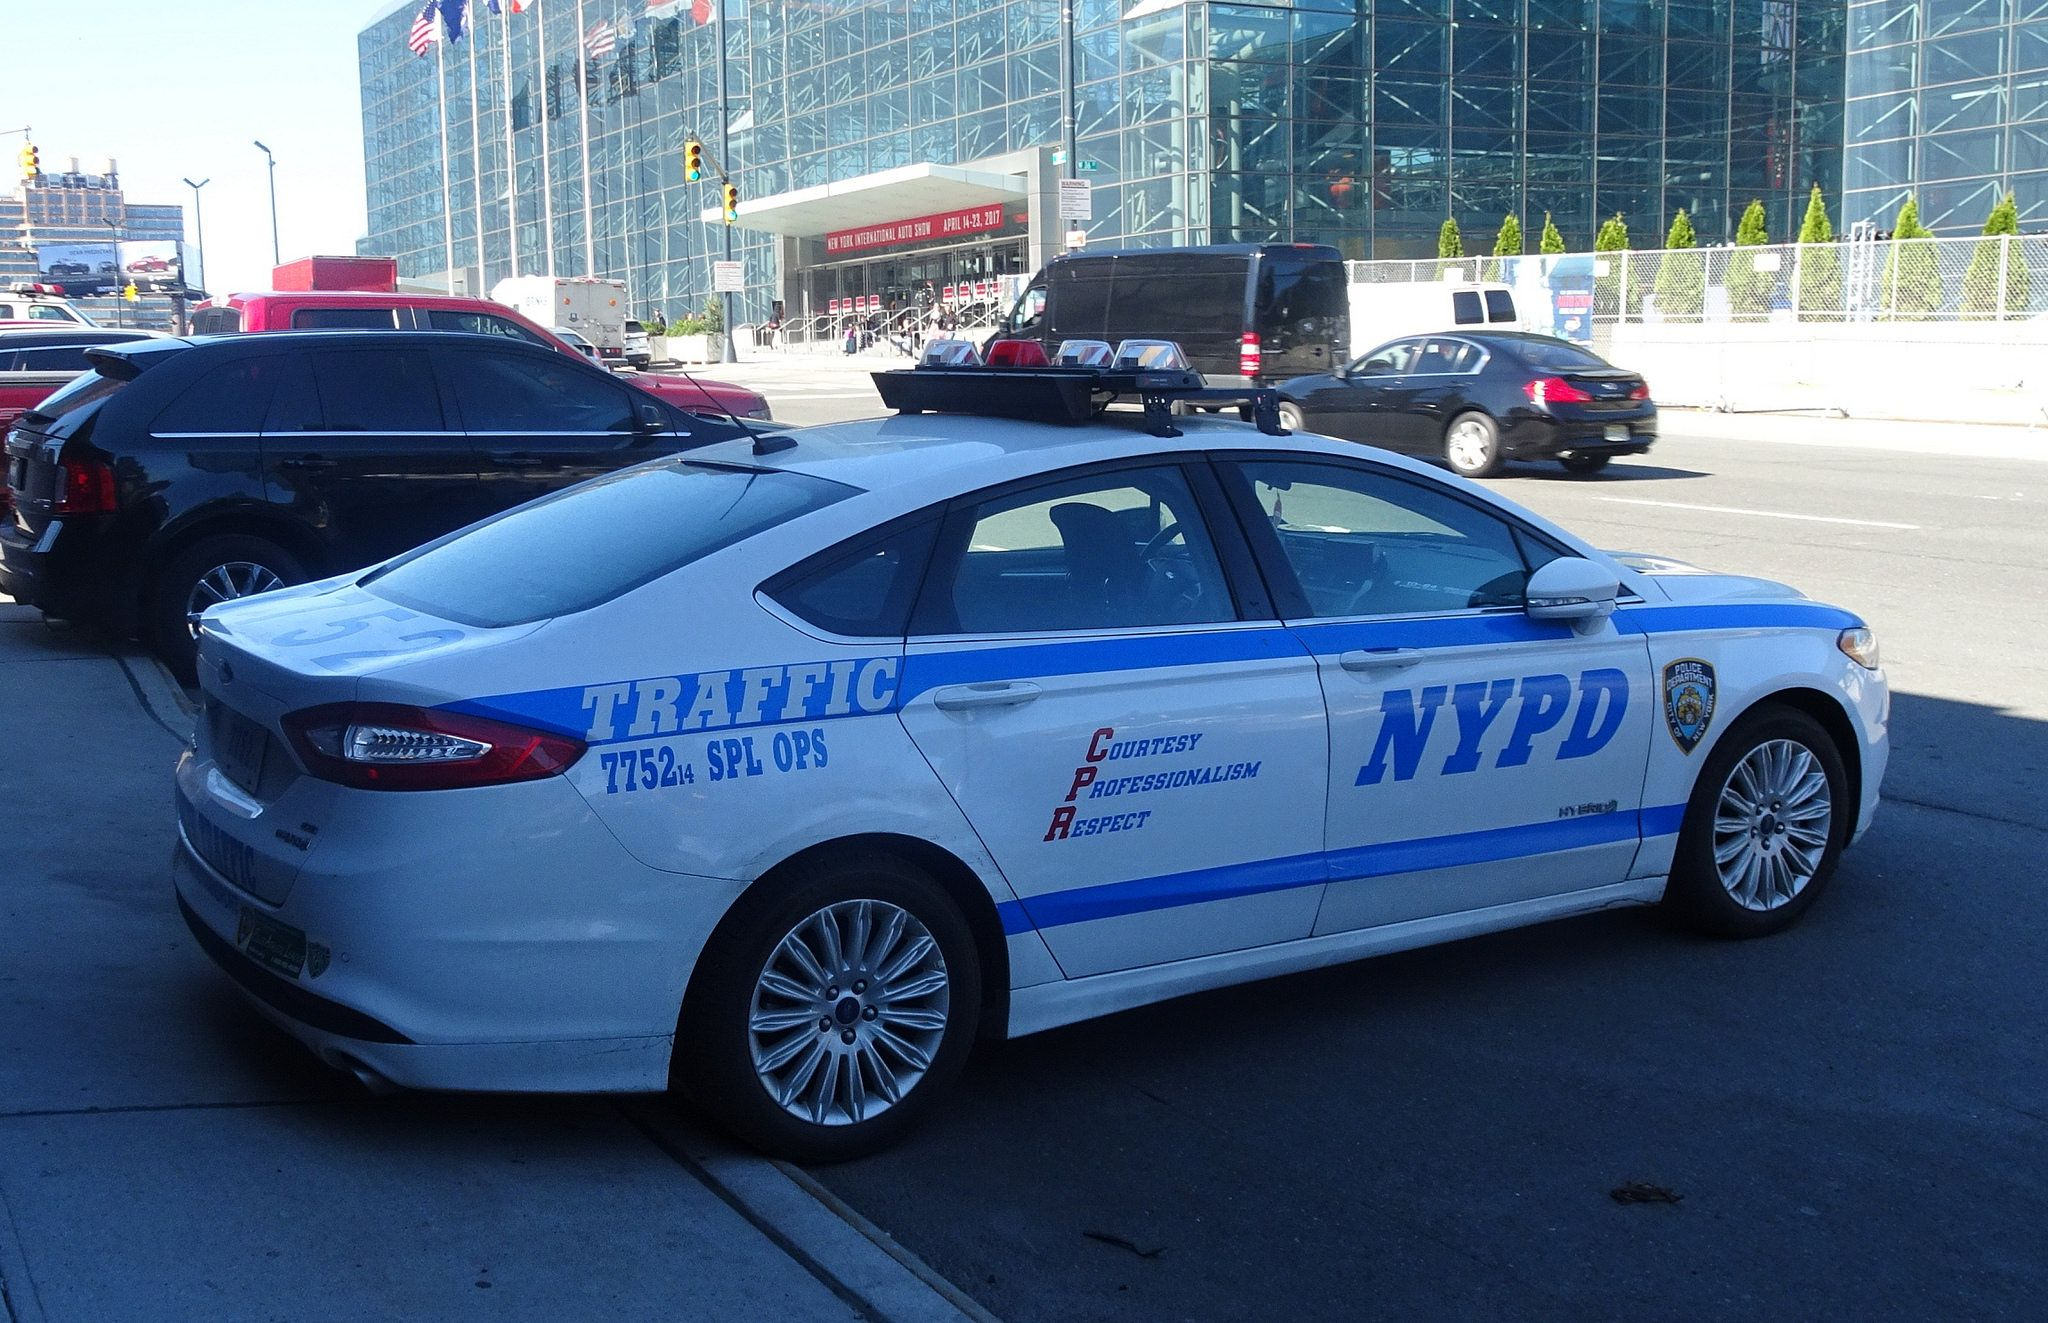 Nypd 2014 Ford Fusion Hybrid 7752 Traffic 2 Ford Fusion